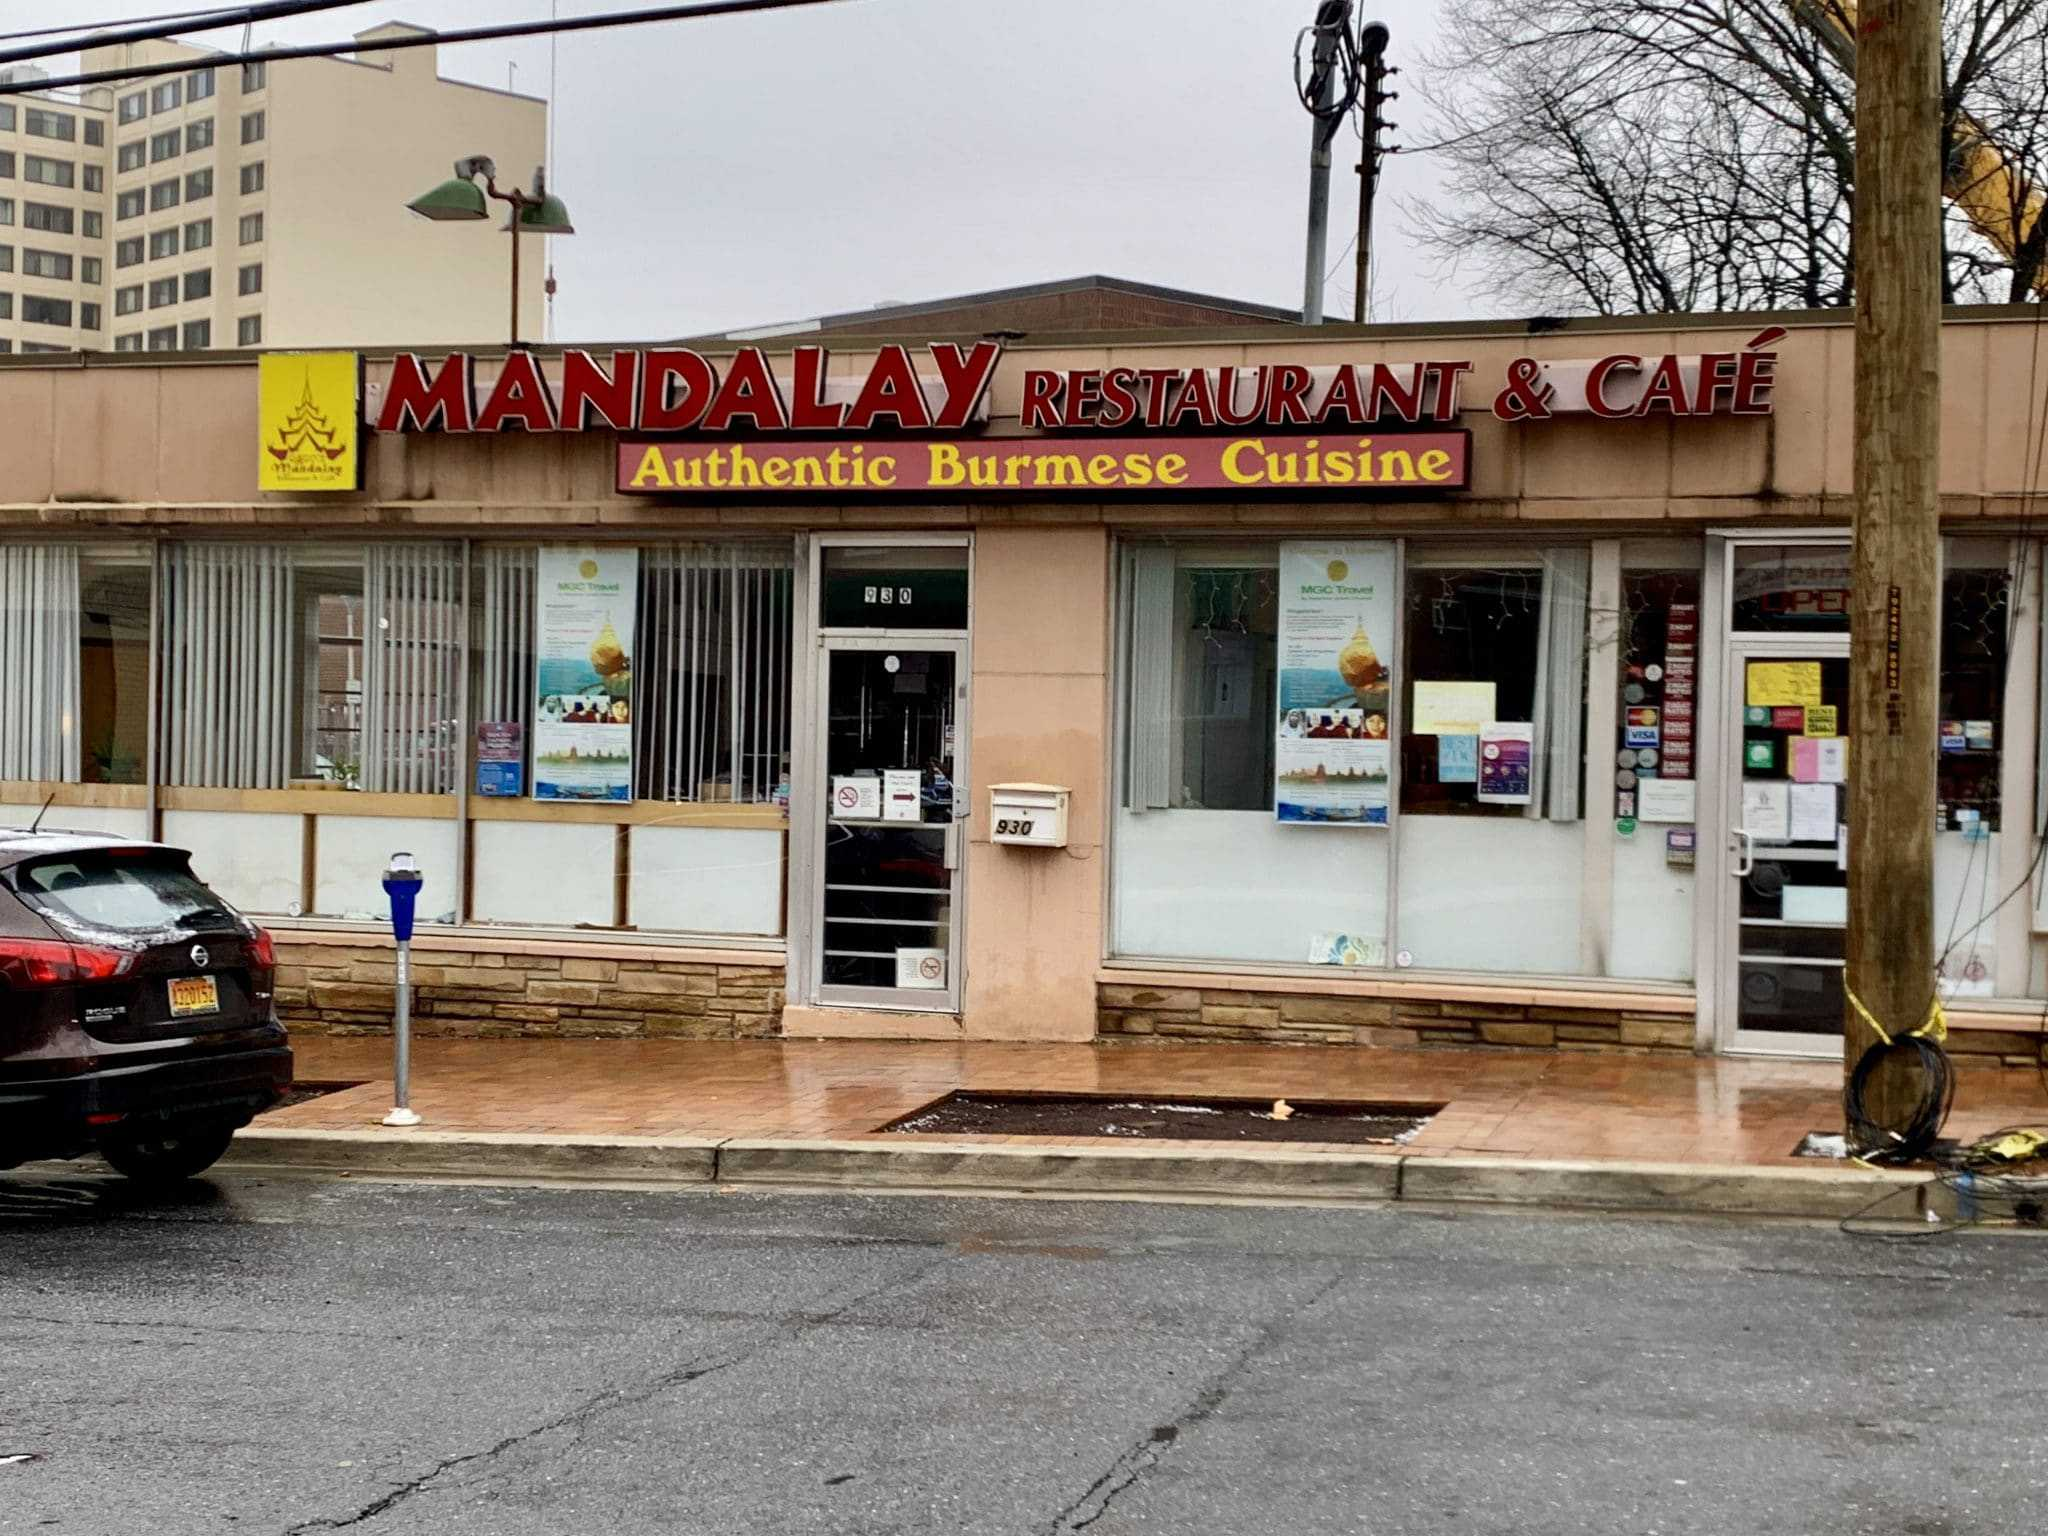 Mandalay Plans Move to Georgia Avenue in D.C. - Mandalay Restaurant and Café will move from its Bonifant Street location to Georgia Avenue in Washington, D.C., according to an announcement on the outlet's Facebook page. The family-owned restaurant specializes in Burmese cuisine and has operated in Silver Spring since 2005 after moving from College Park.